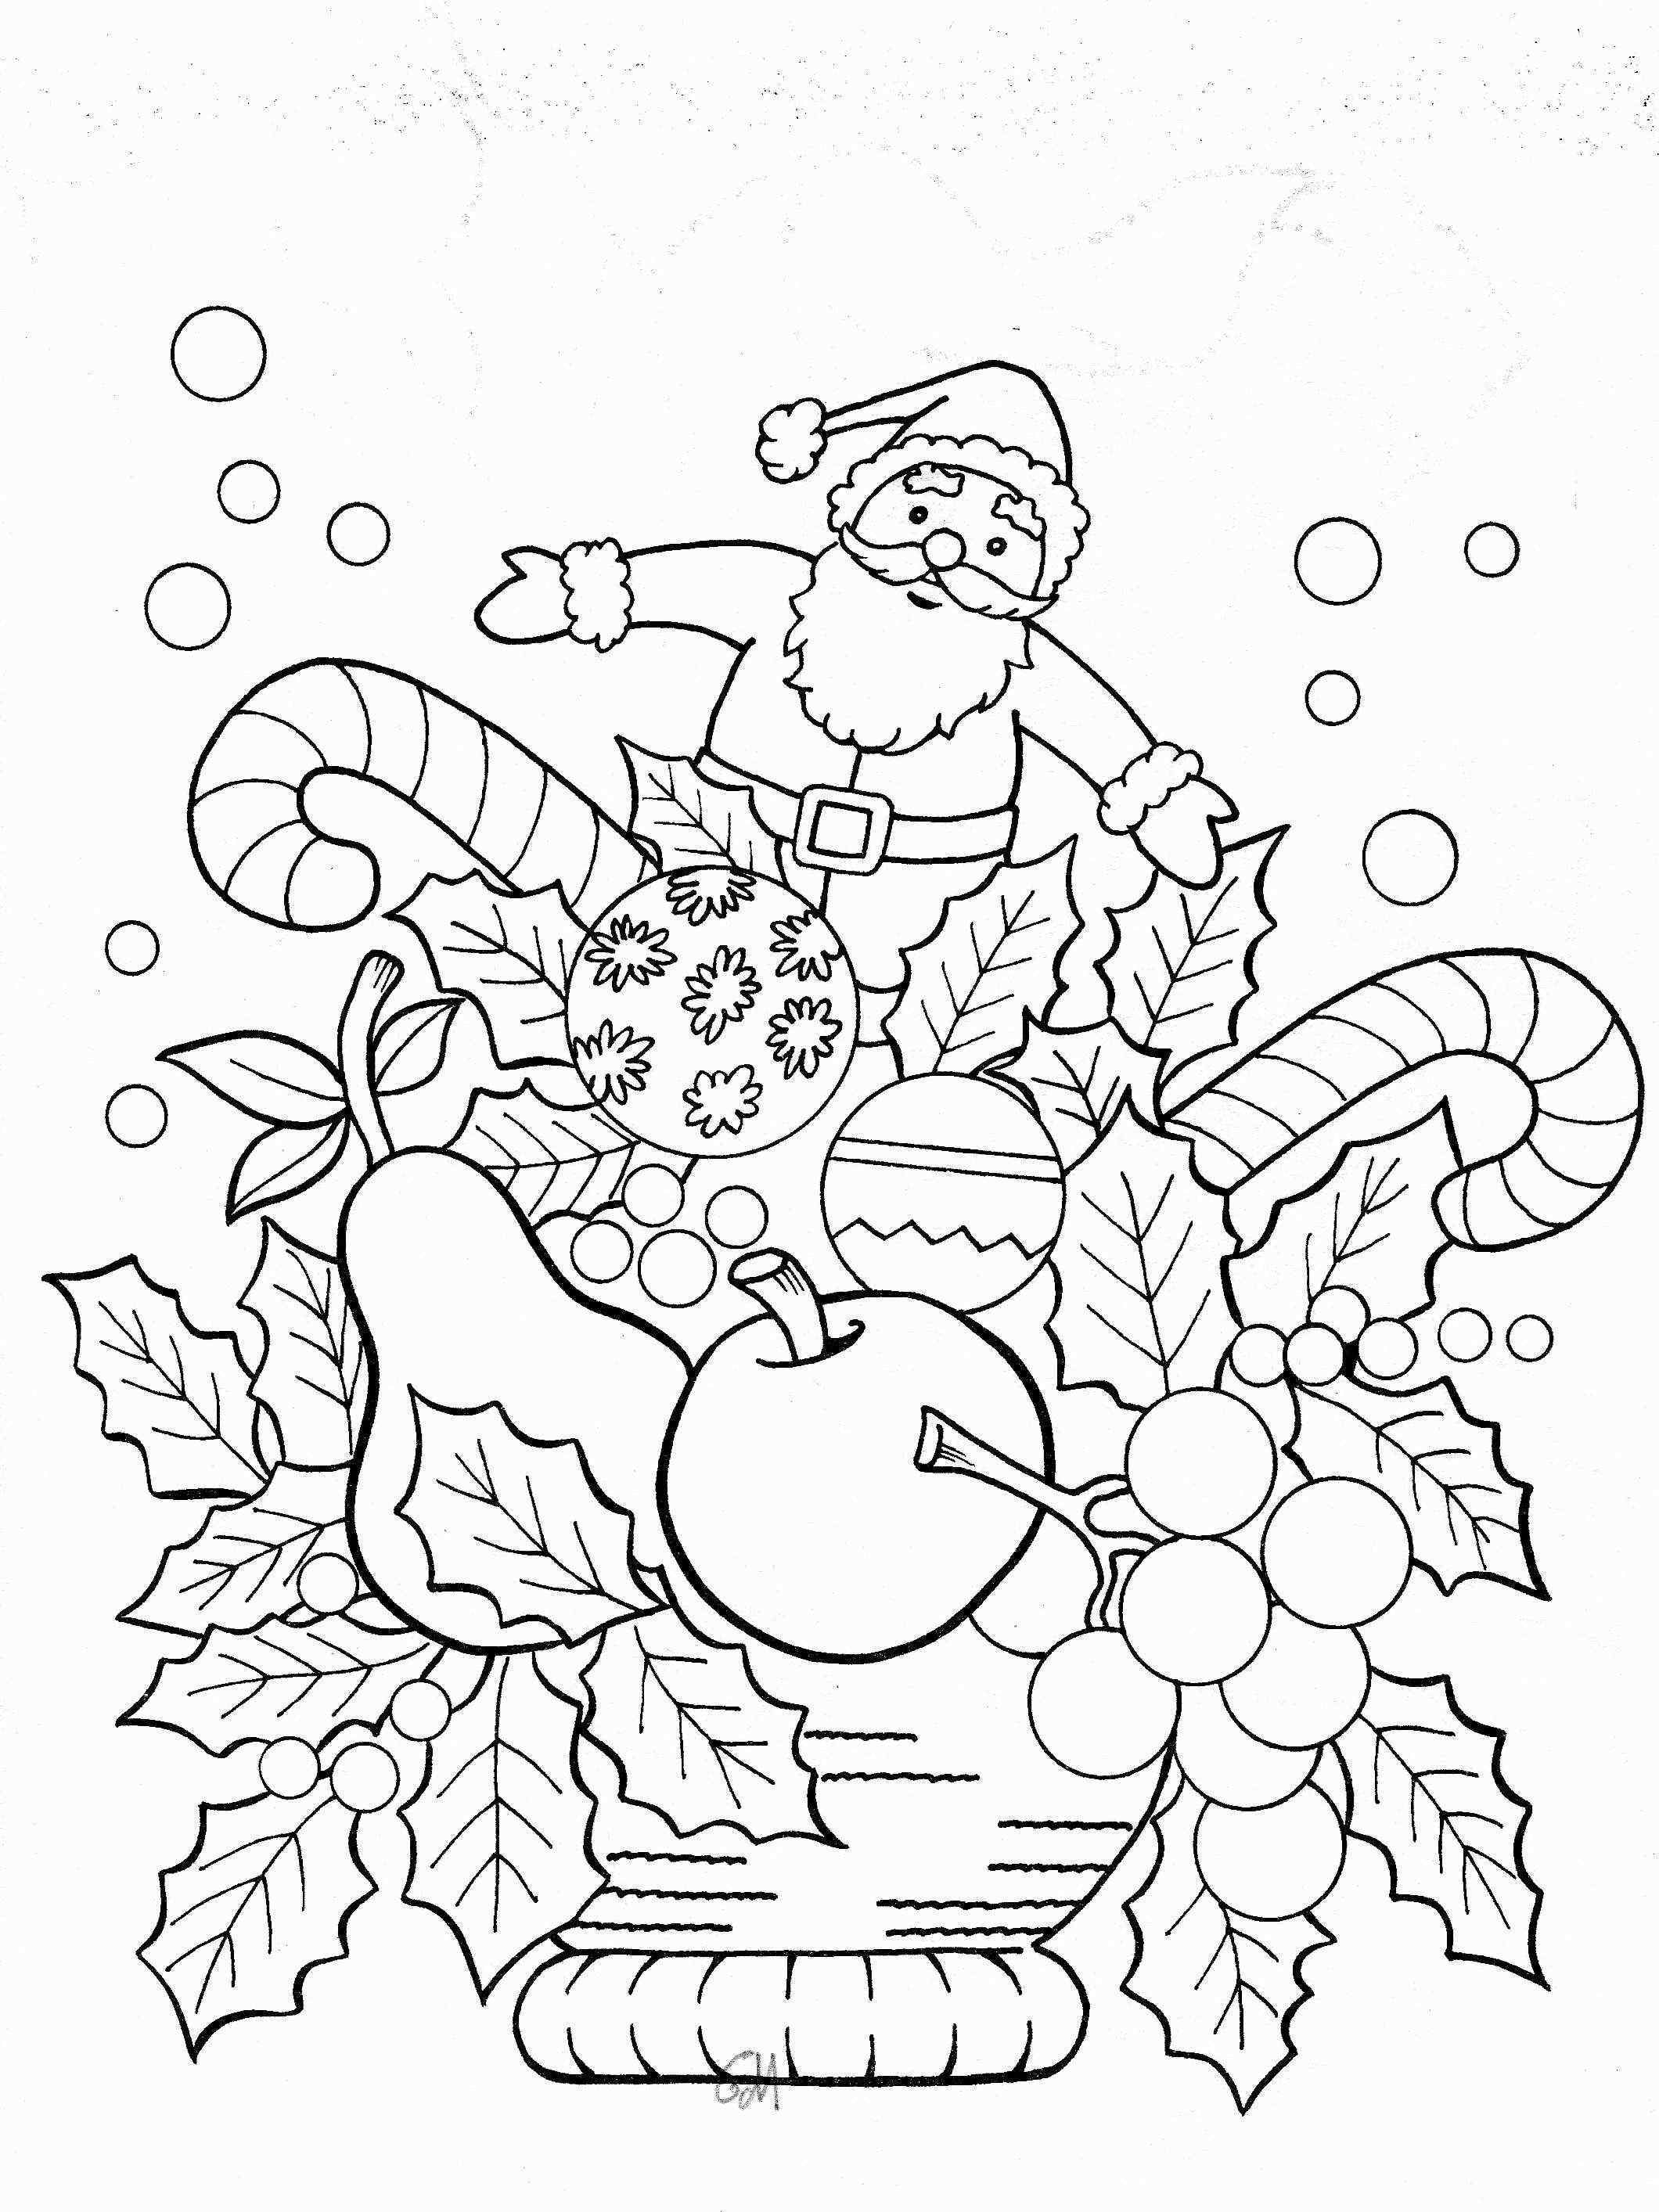 coloring pages greeting cards Download-Christmas Coloring Pages for Printable New Cool Coloring Printables 0d – Fun Time – Coloring Sheets 19-c